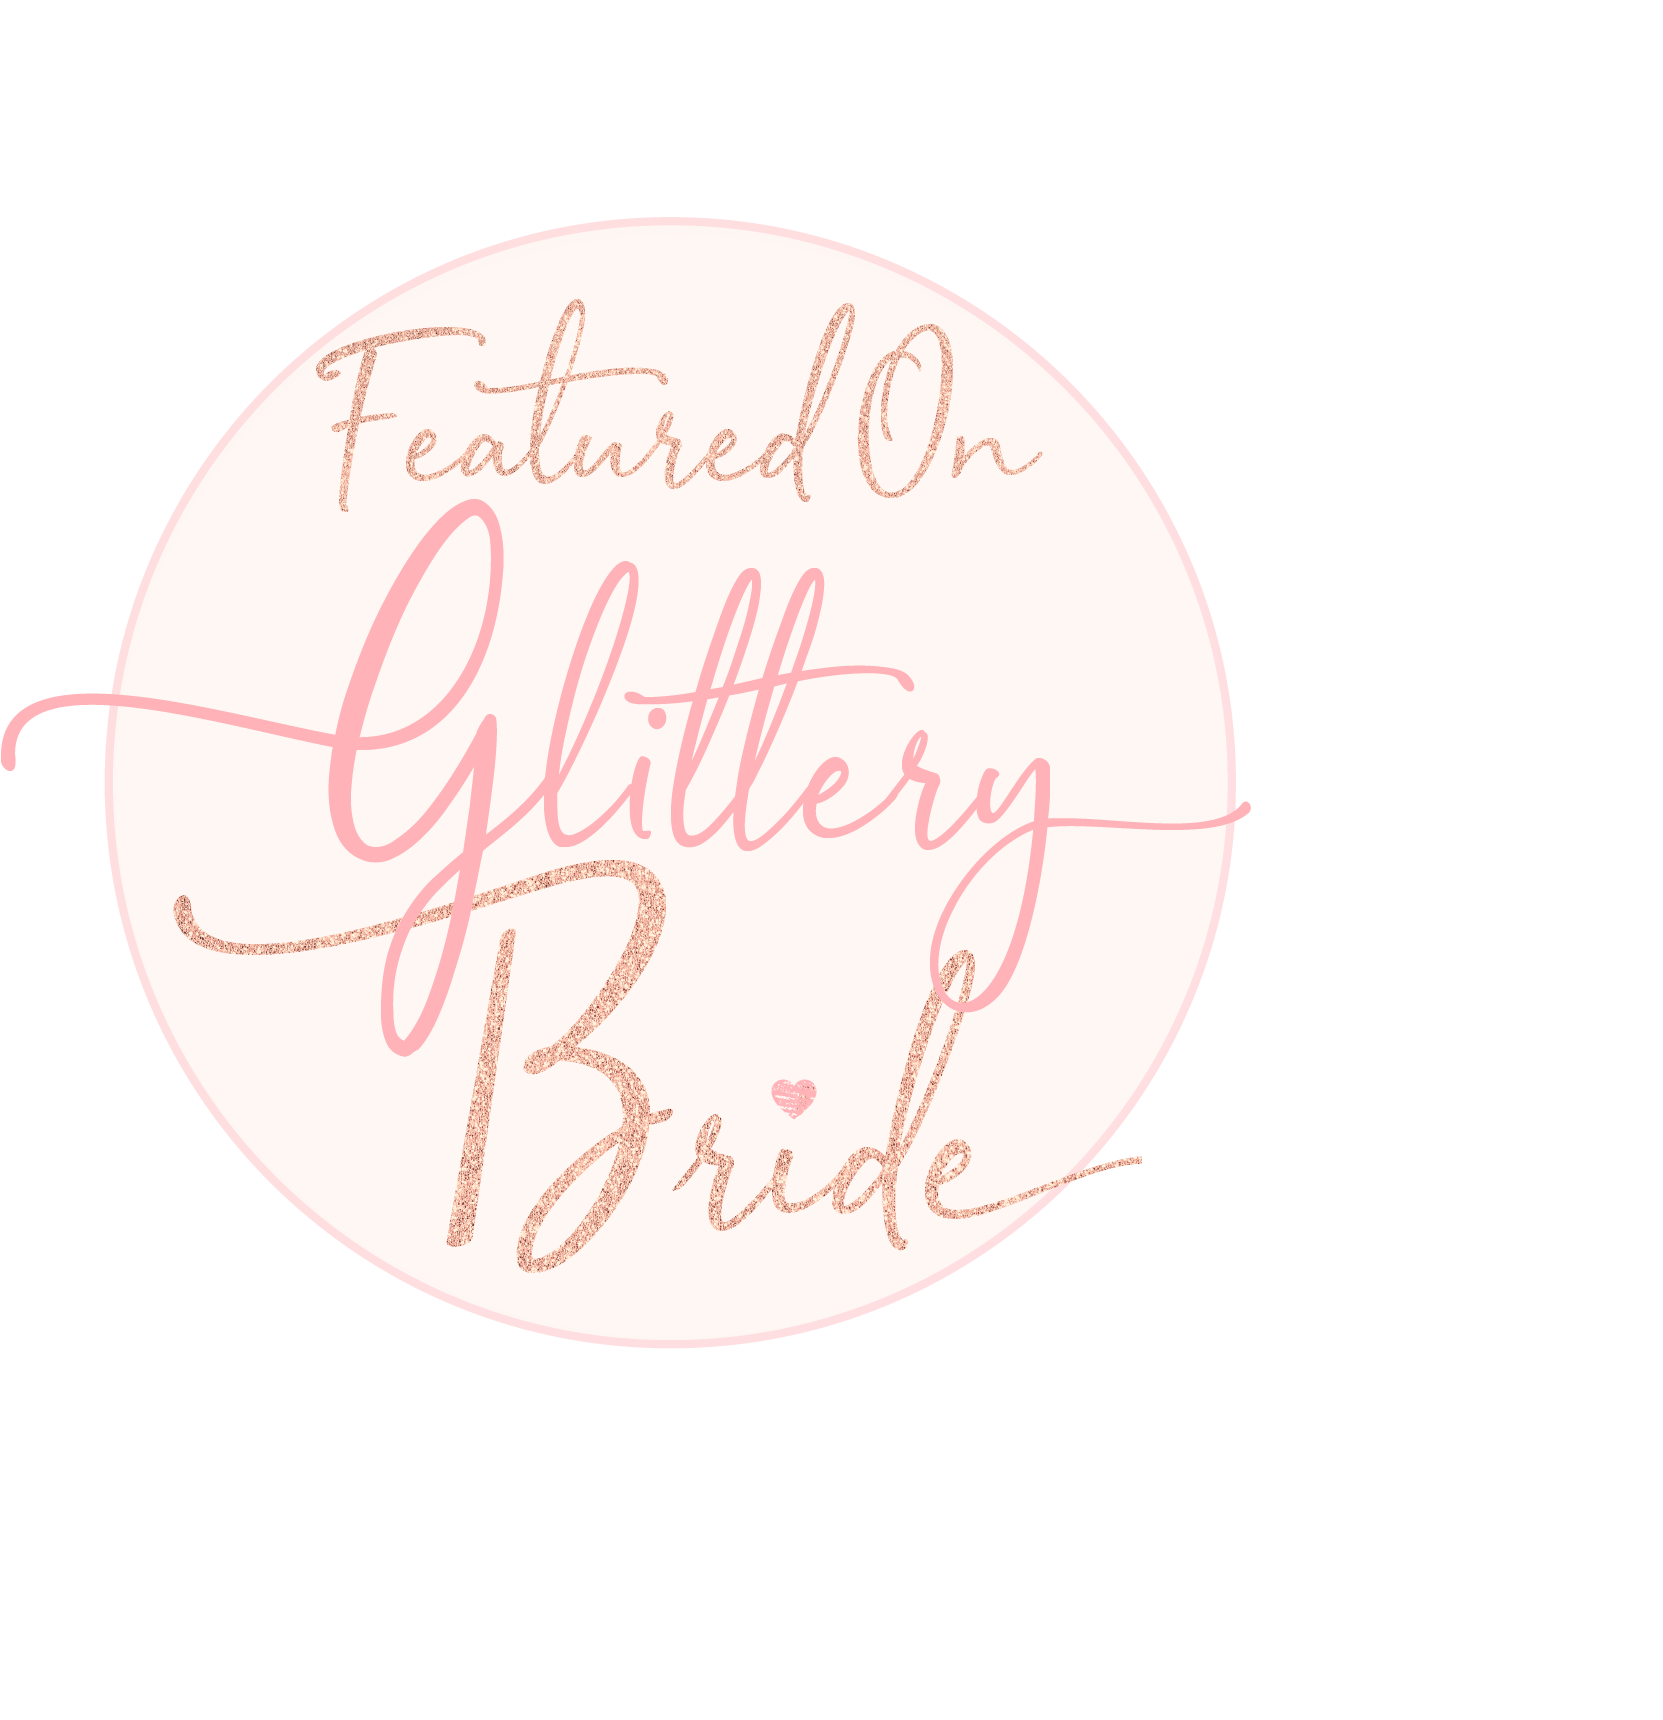 featured on glittery bride badge